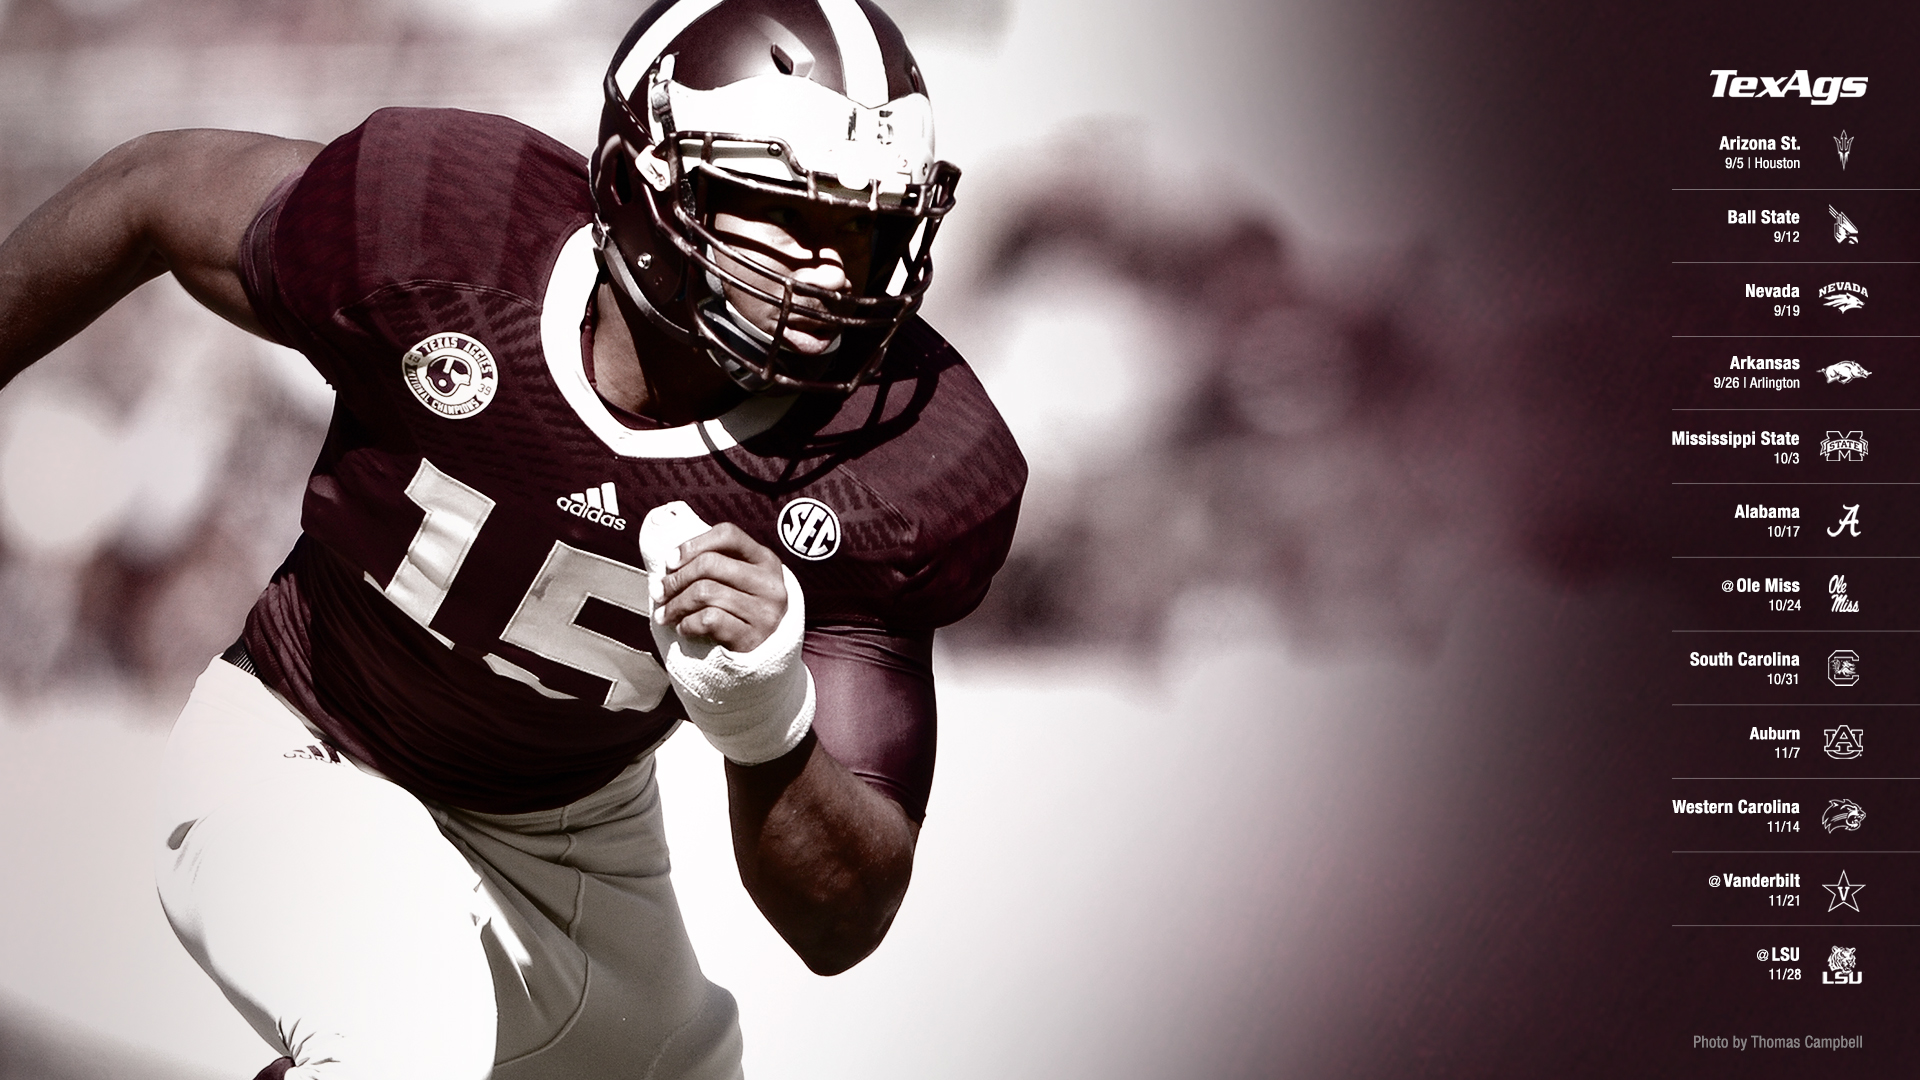 2015 aggie football wallpapers texags 2015 aggie football wallpapers voltagebd Image collections